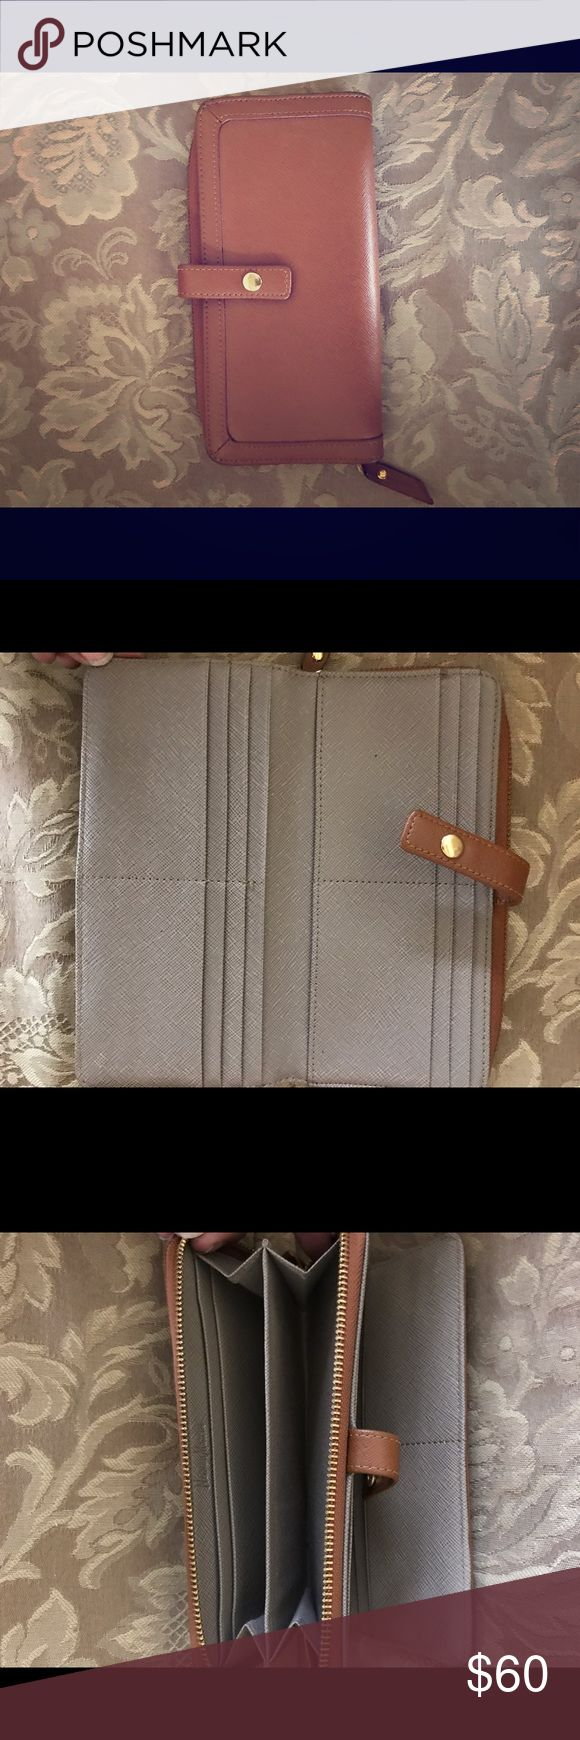 Neiman Marcus All in one clutch/wallet Neiman Marcus all In one clutch/wallet in great condition 12 credit card slot, cash and coin side with zipper closure. Neiman Marcus Bags Wallets